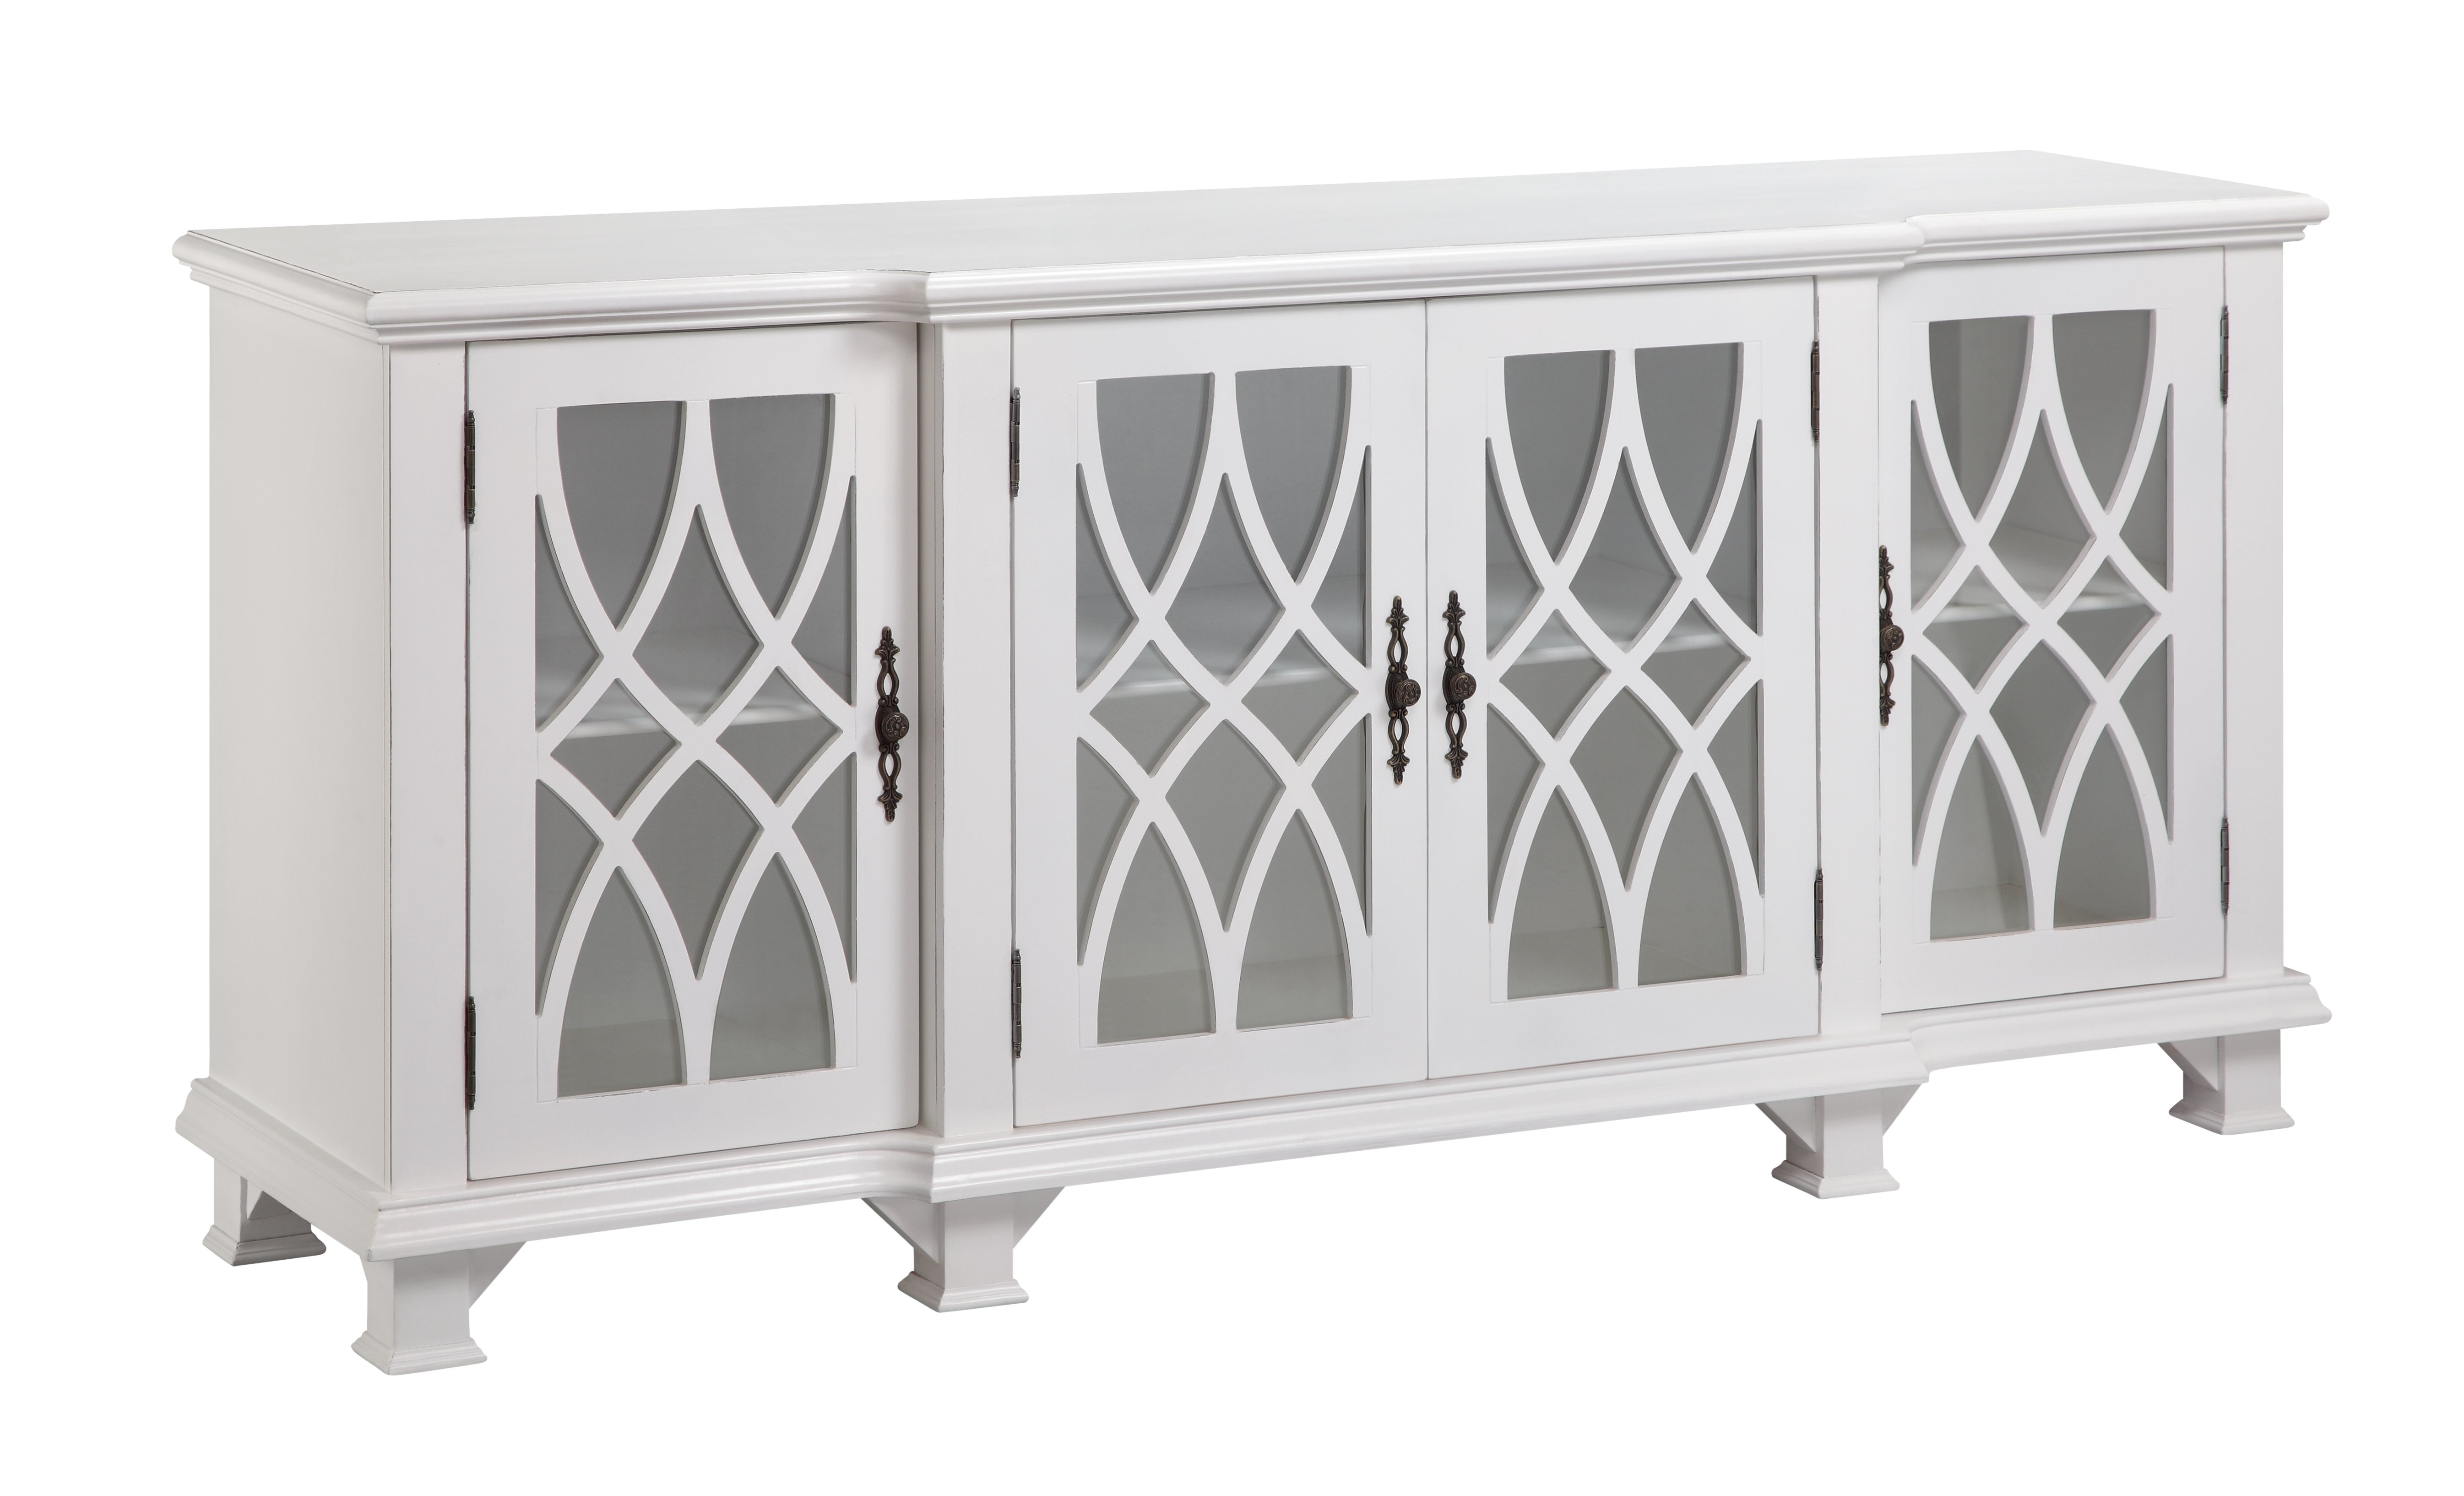 Inspiration about Tott And Eling Sideboard In Most Recent Tott And Eling Sideboards (#1 of 20)